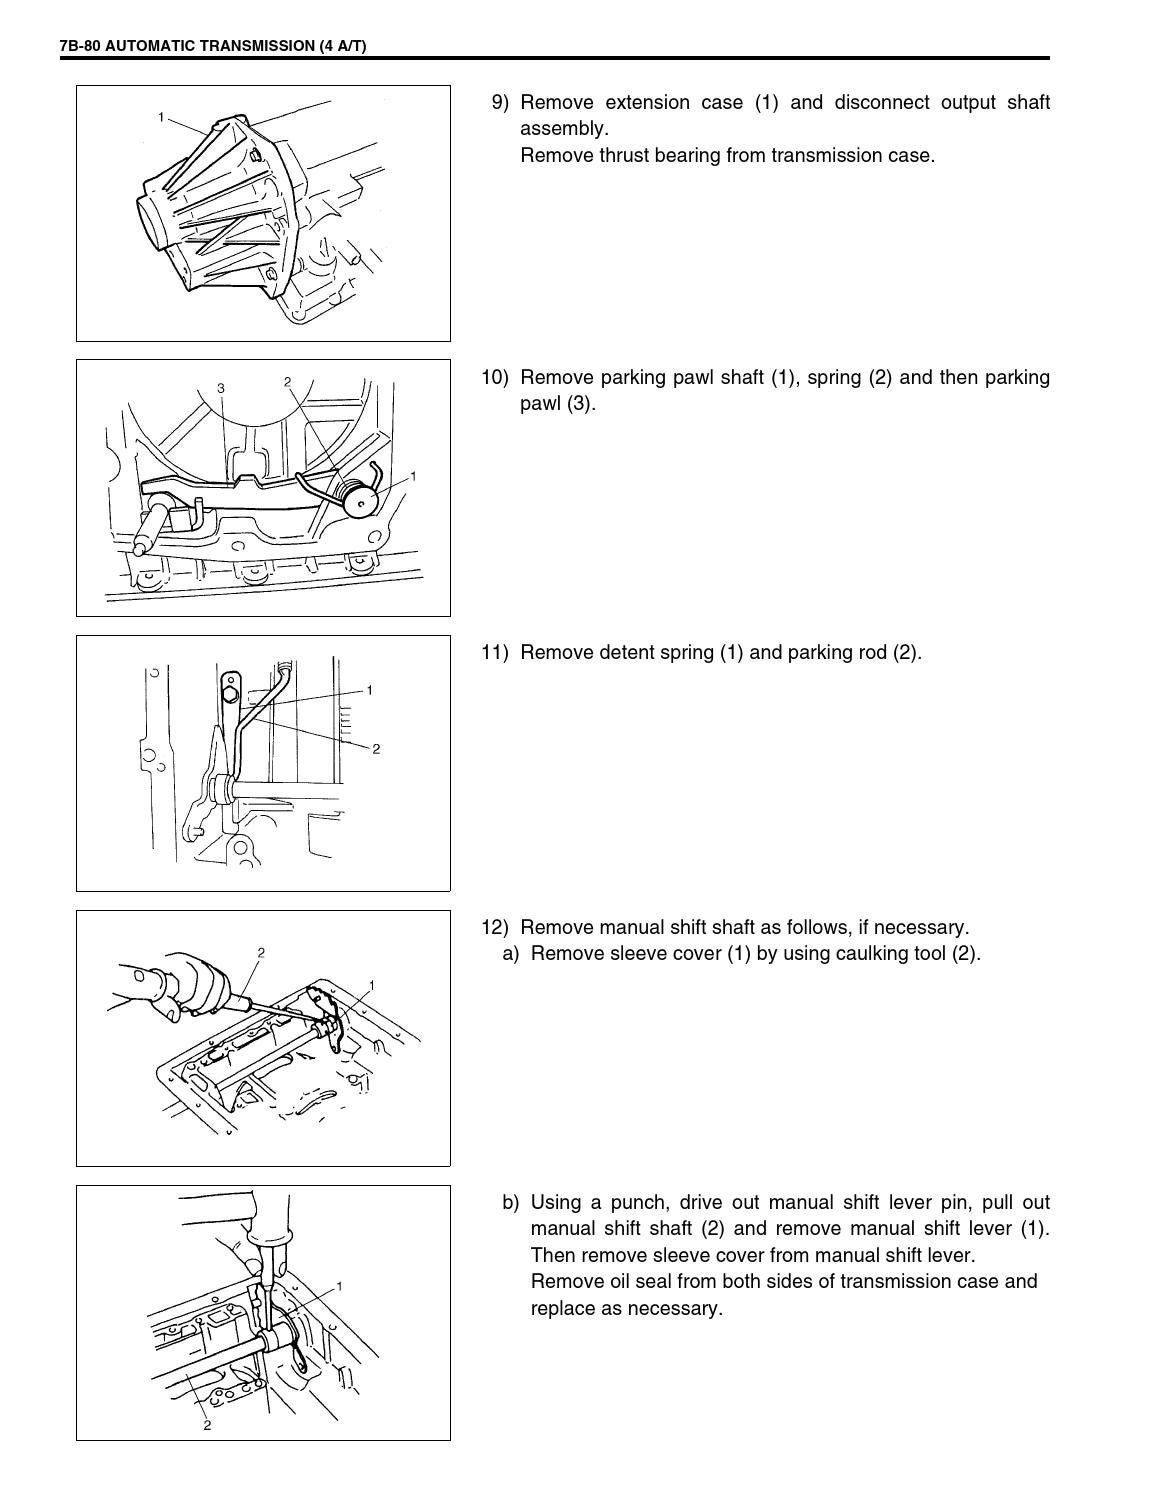 Jimny part2 3 servicemanual 99500 81a10 01e sn413 by VALDIR SOARES